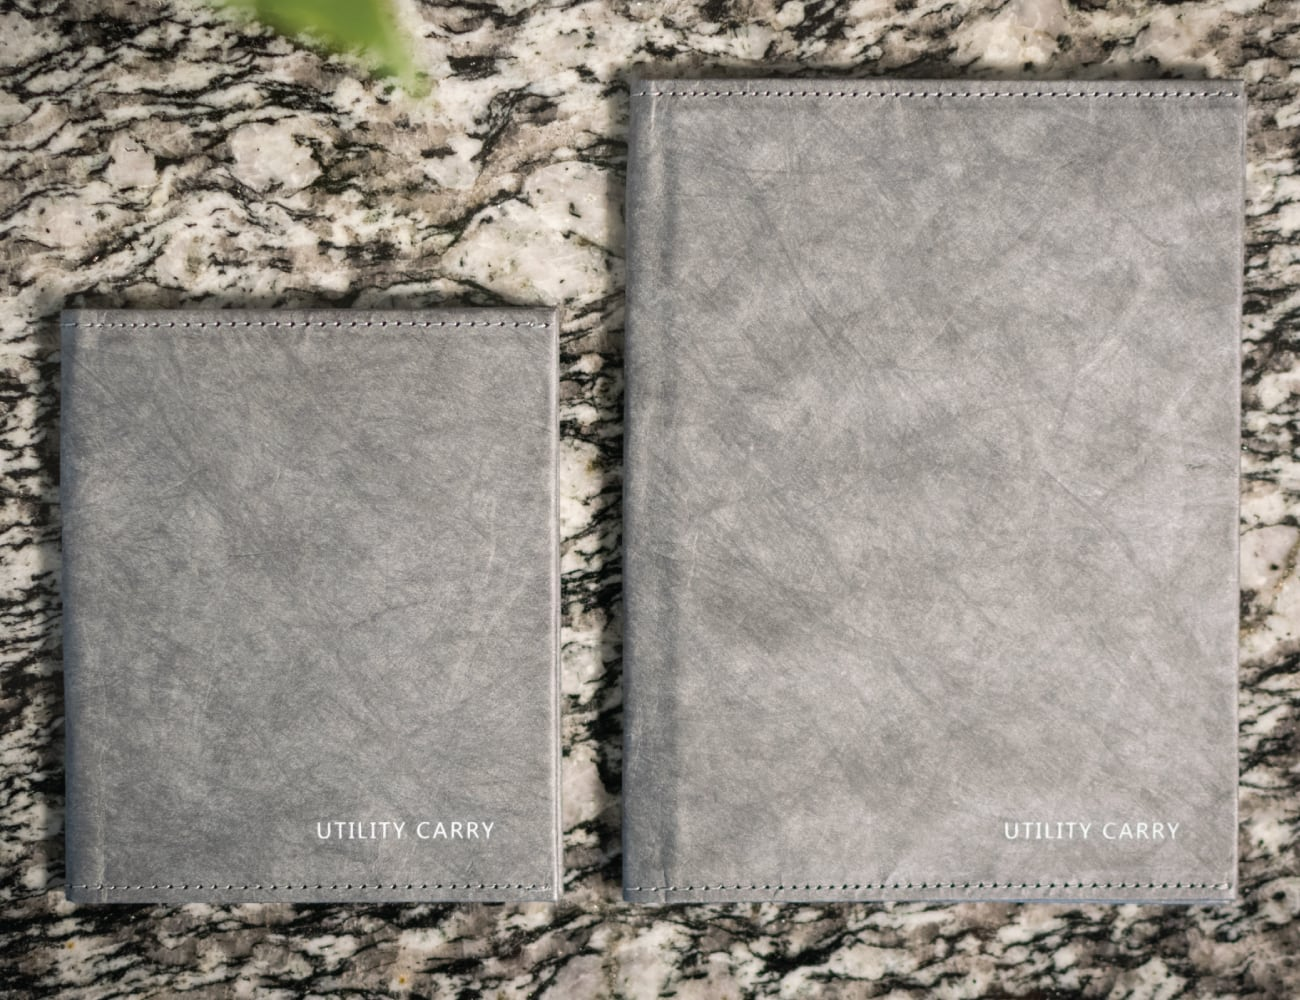 Utility Carry Super Thin Bifold & Travel Wallets